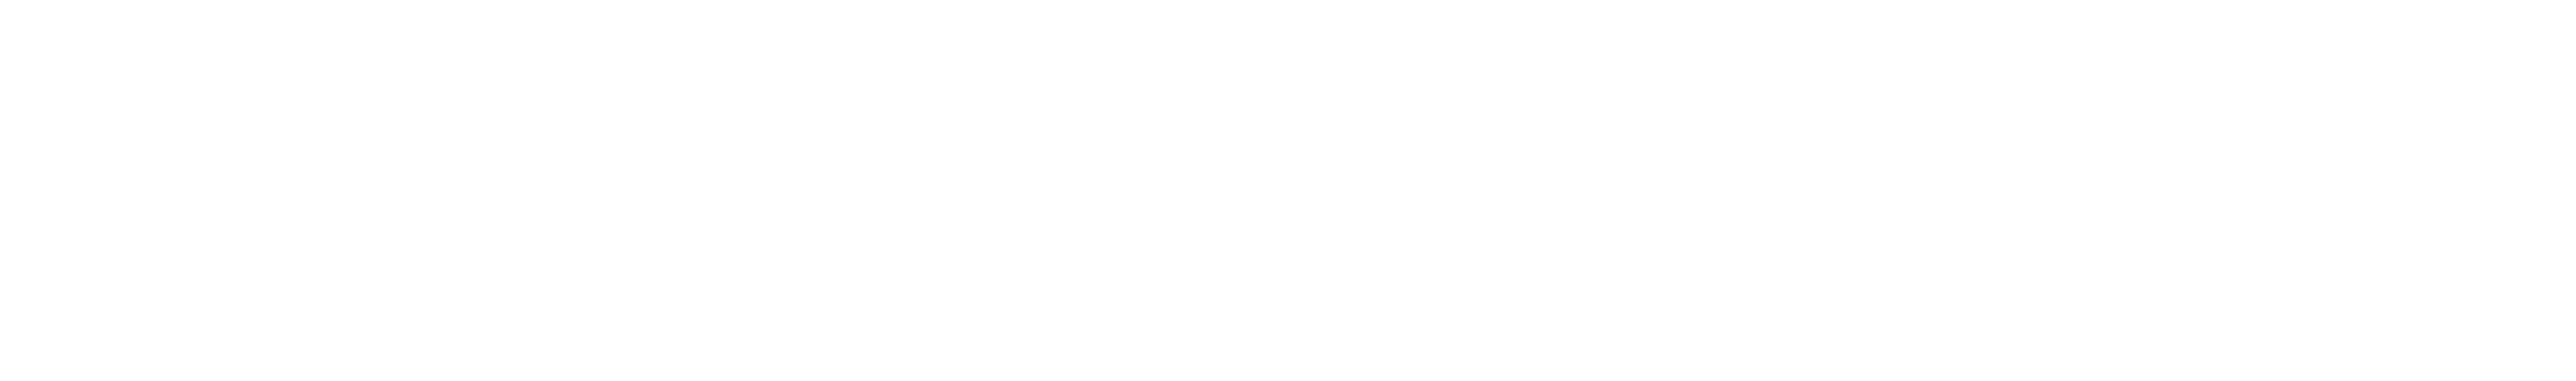 cropped-white_logo_transparent-copy-1.png